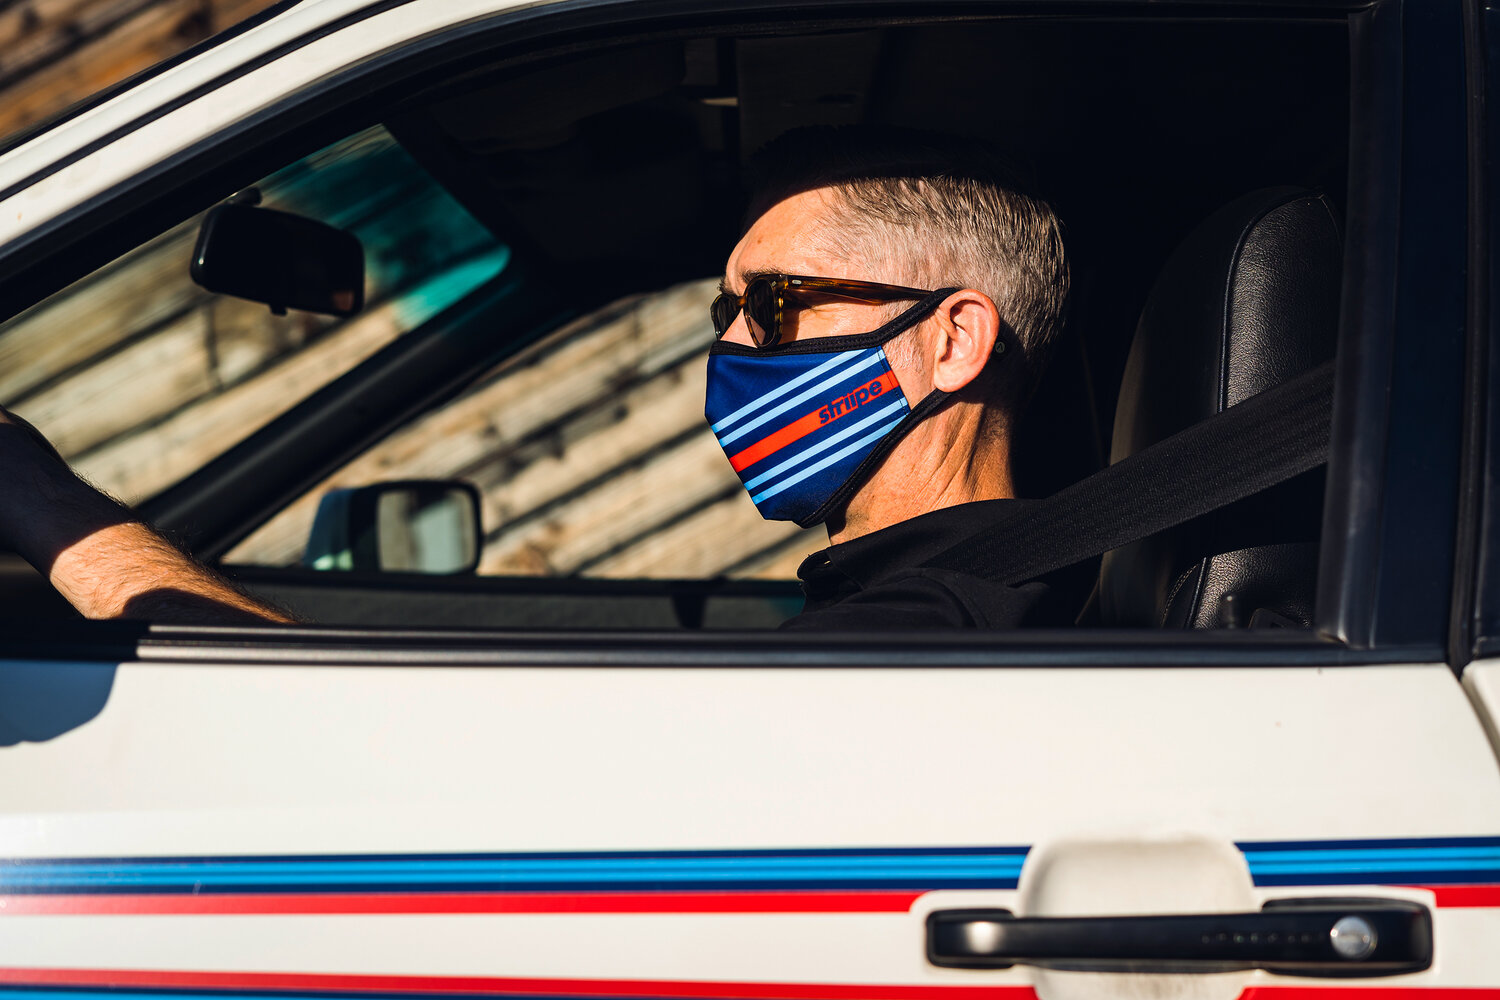 Check Out These Cool Porsche-Inspired Face Coverings